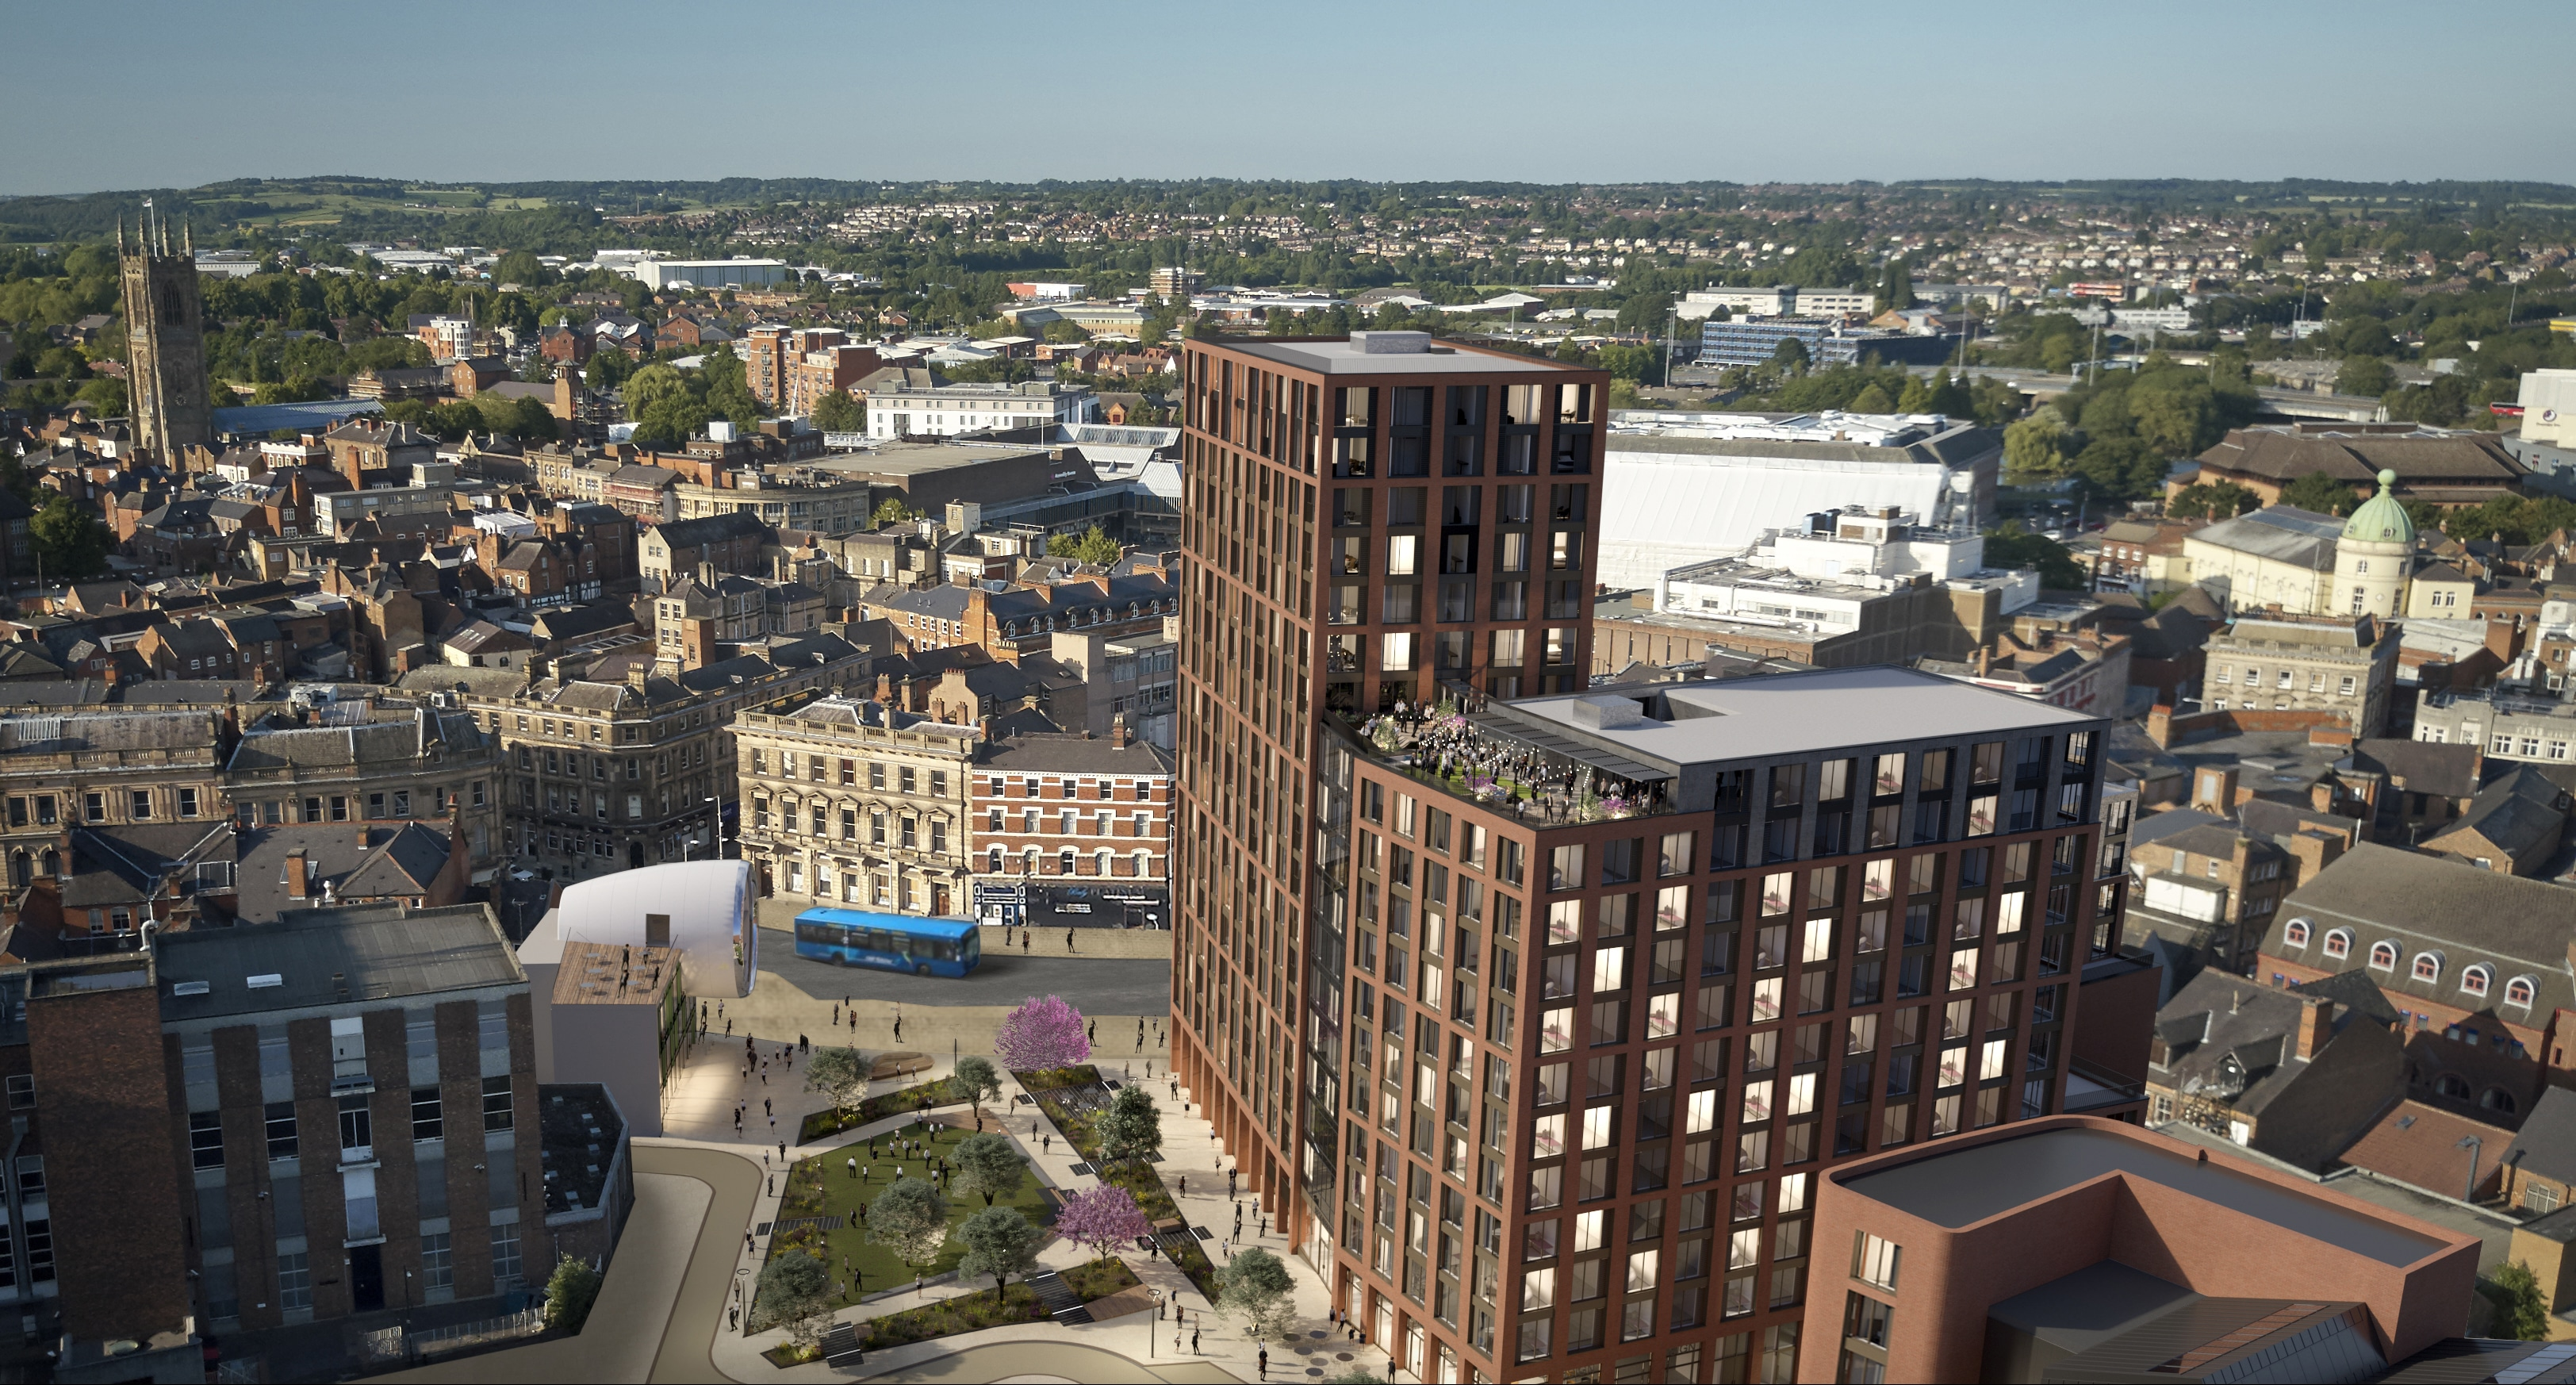 Key Stakeholders and Members of the Public Throw Their Support Behind Plans for the Regeneration of Becketwell